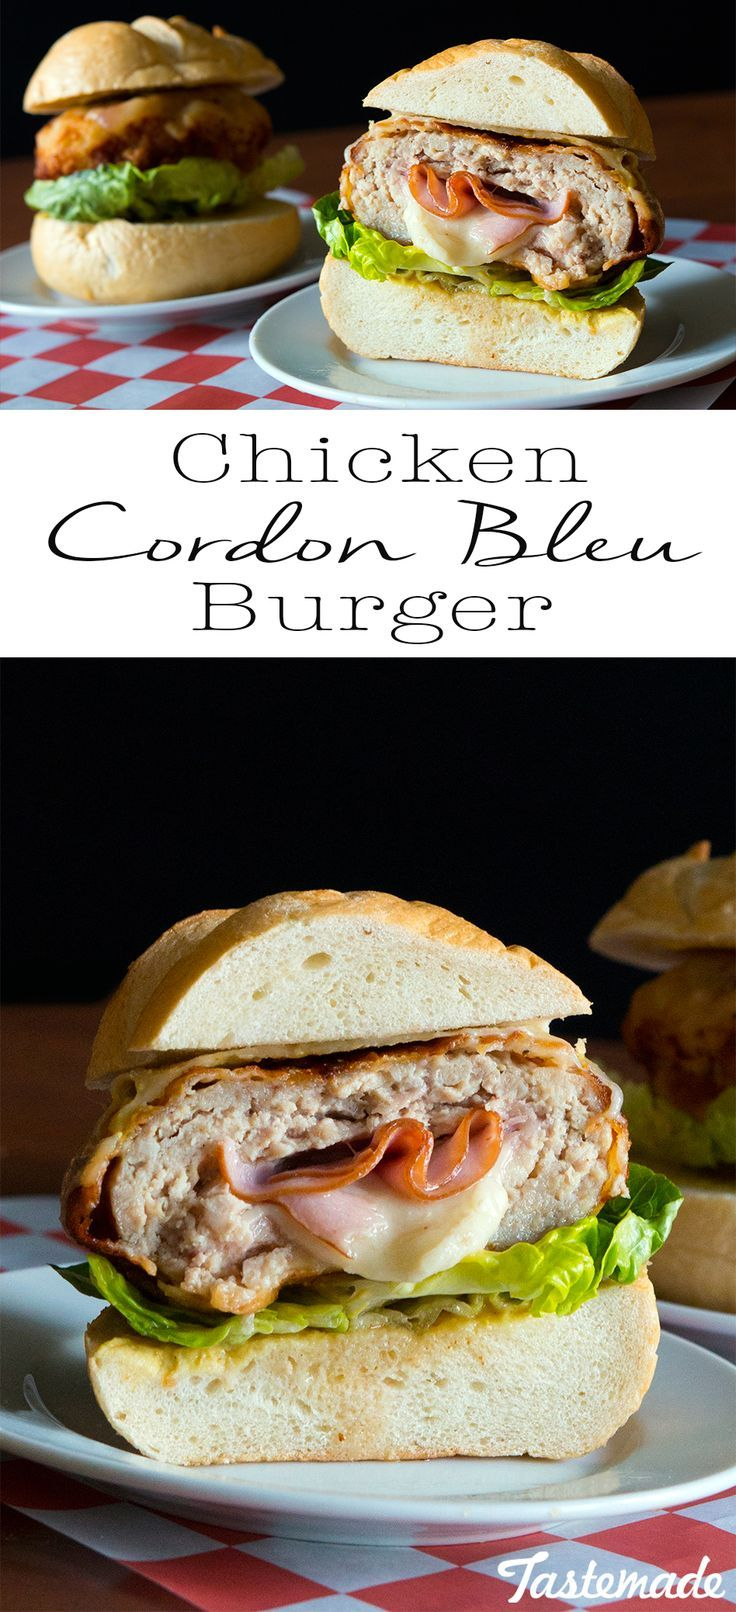 Ham and cheese can be found in the most unexpected of places. This chicken burger is stuffed with a cheesy meaty surprise!